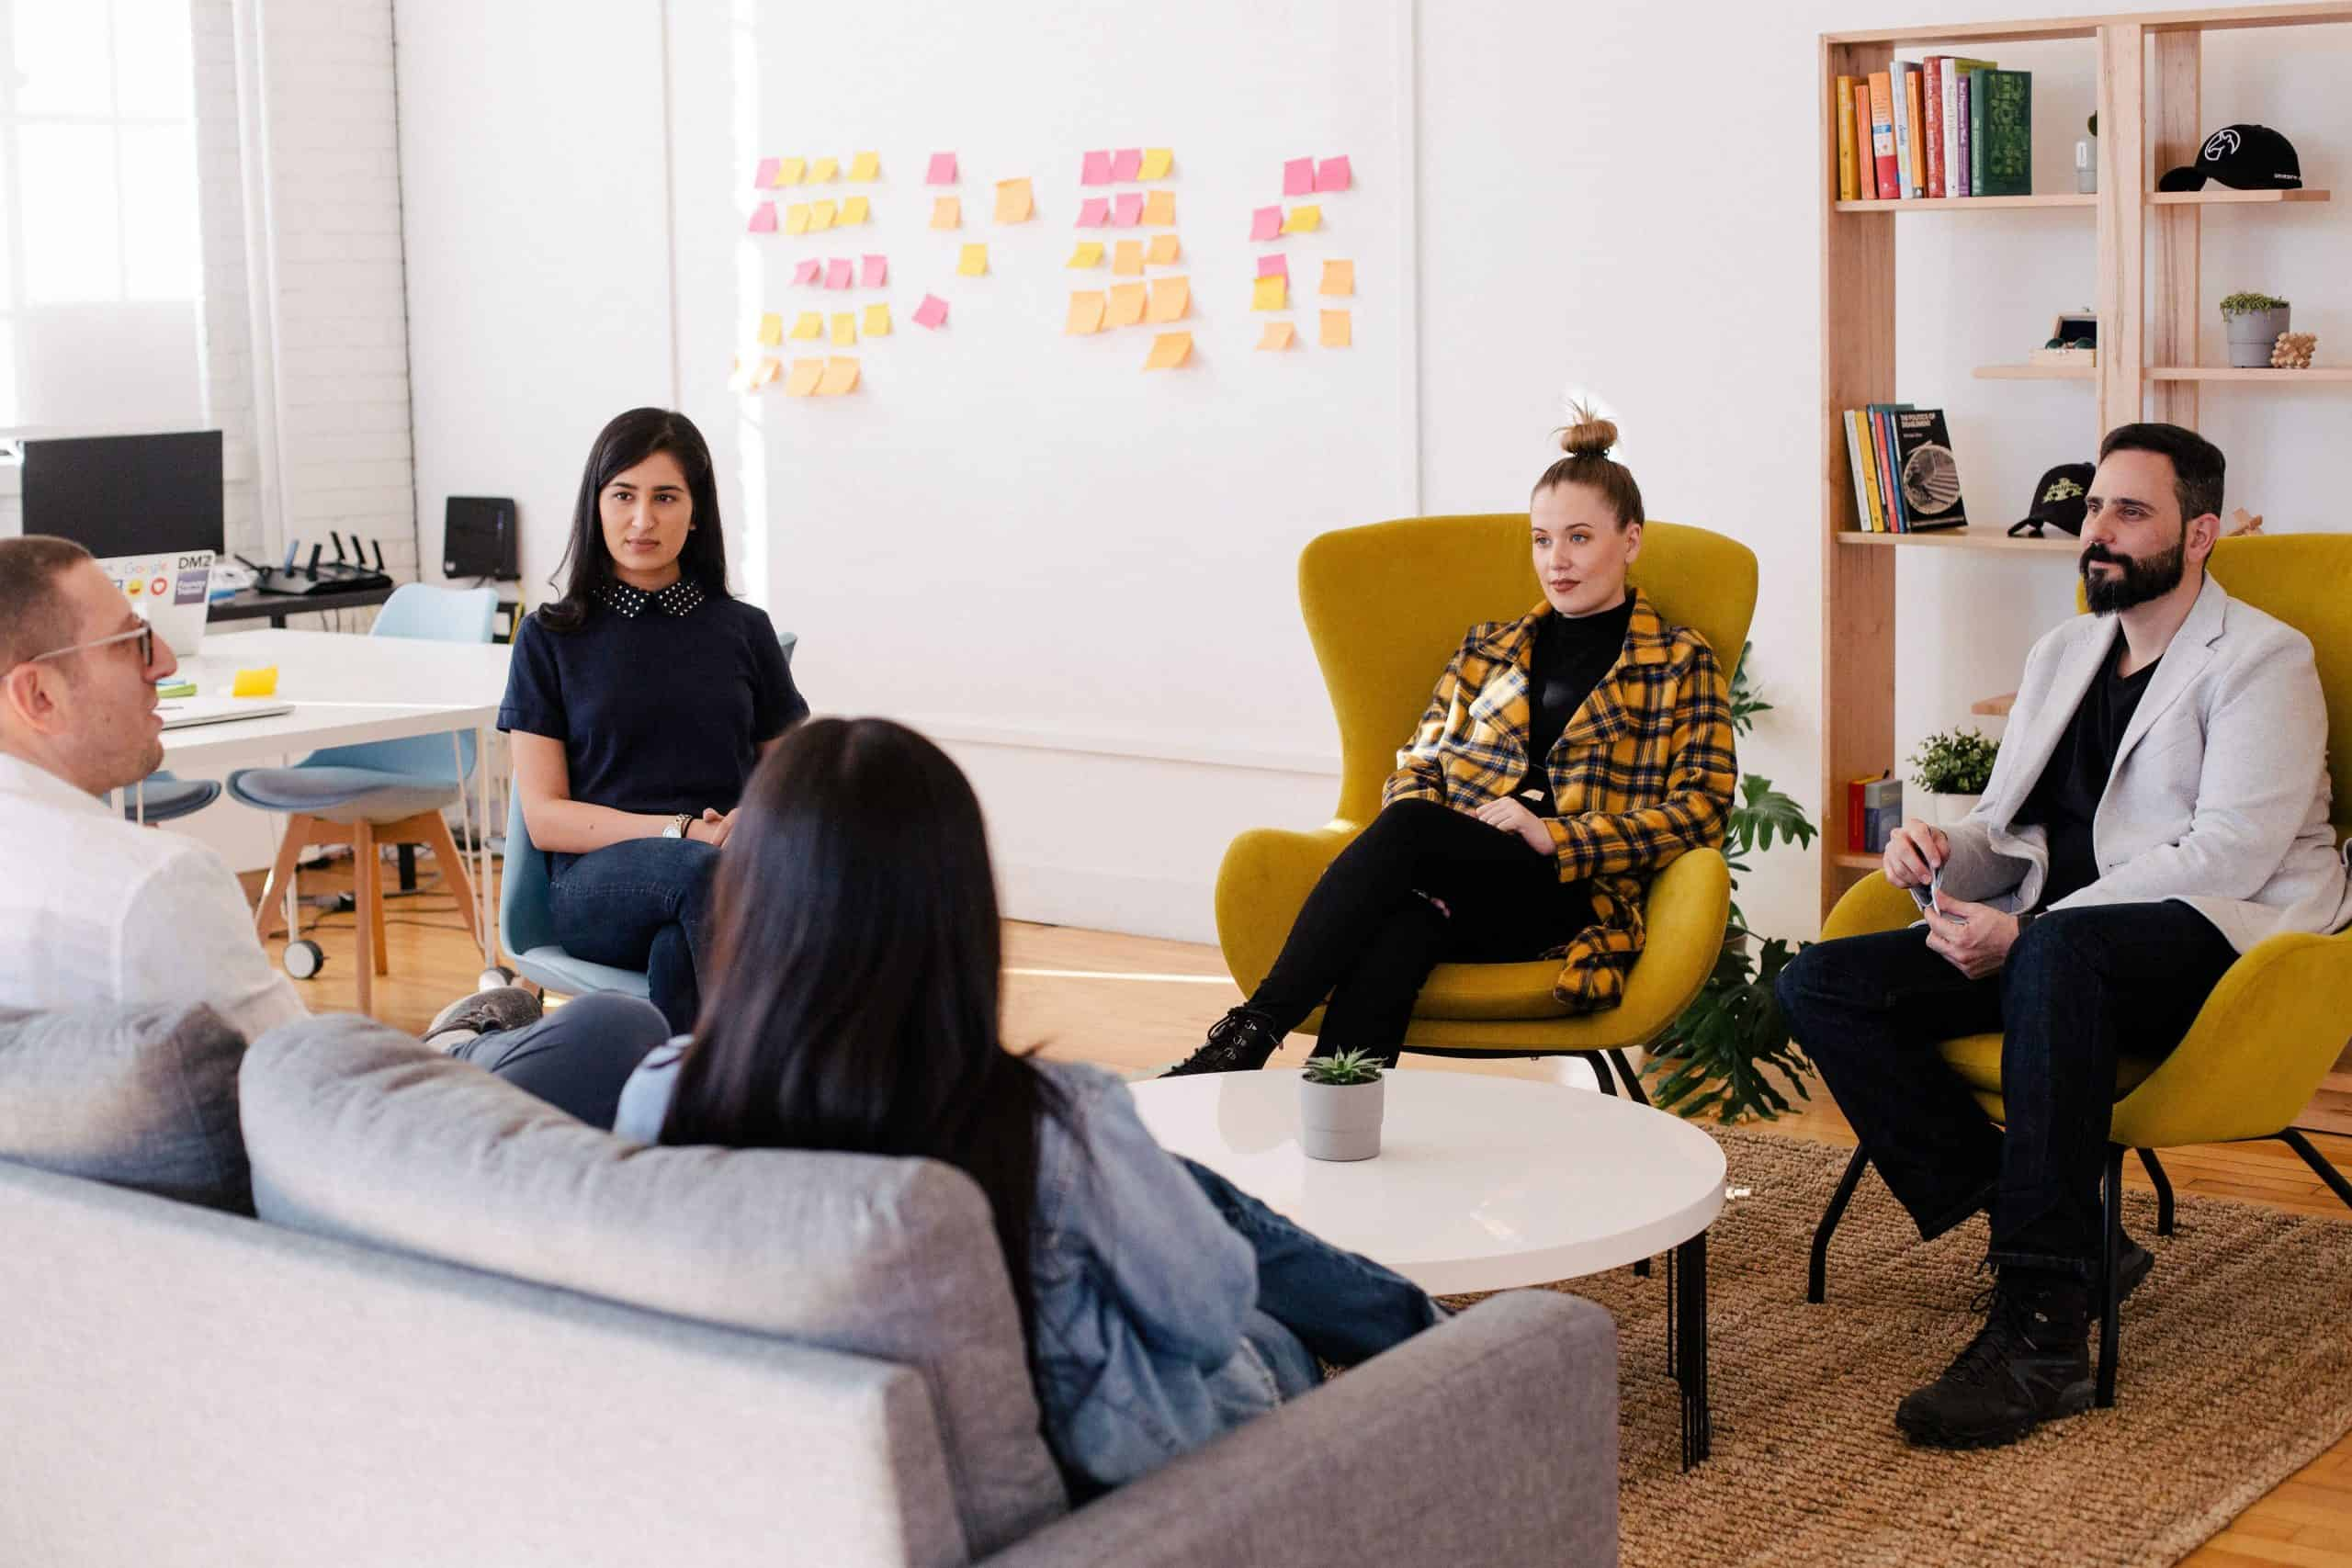 how-to-brainstorm-ideas-more-creatively-and-effectively